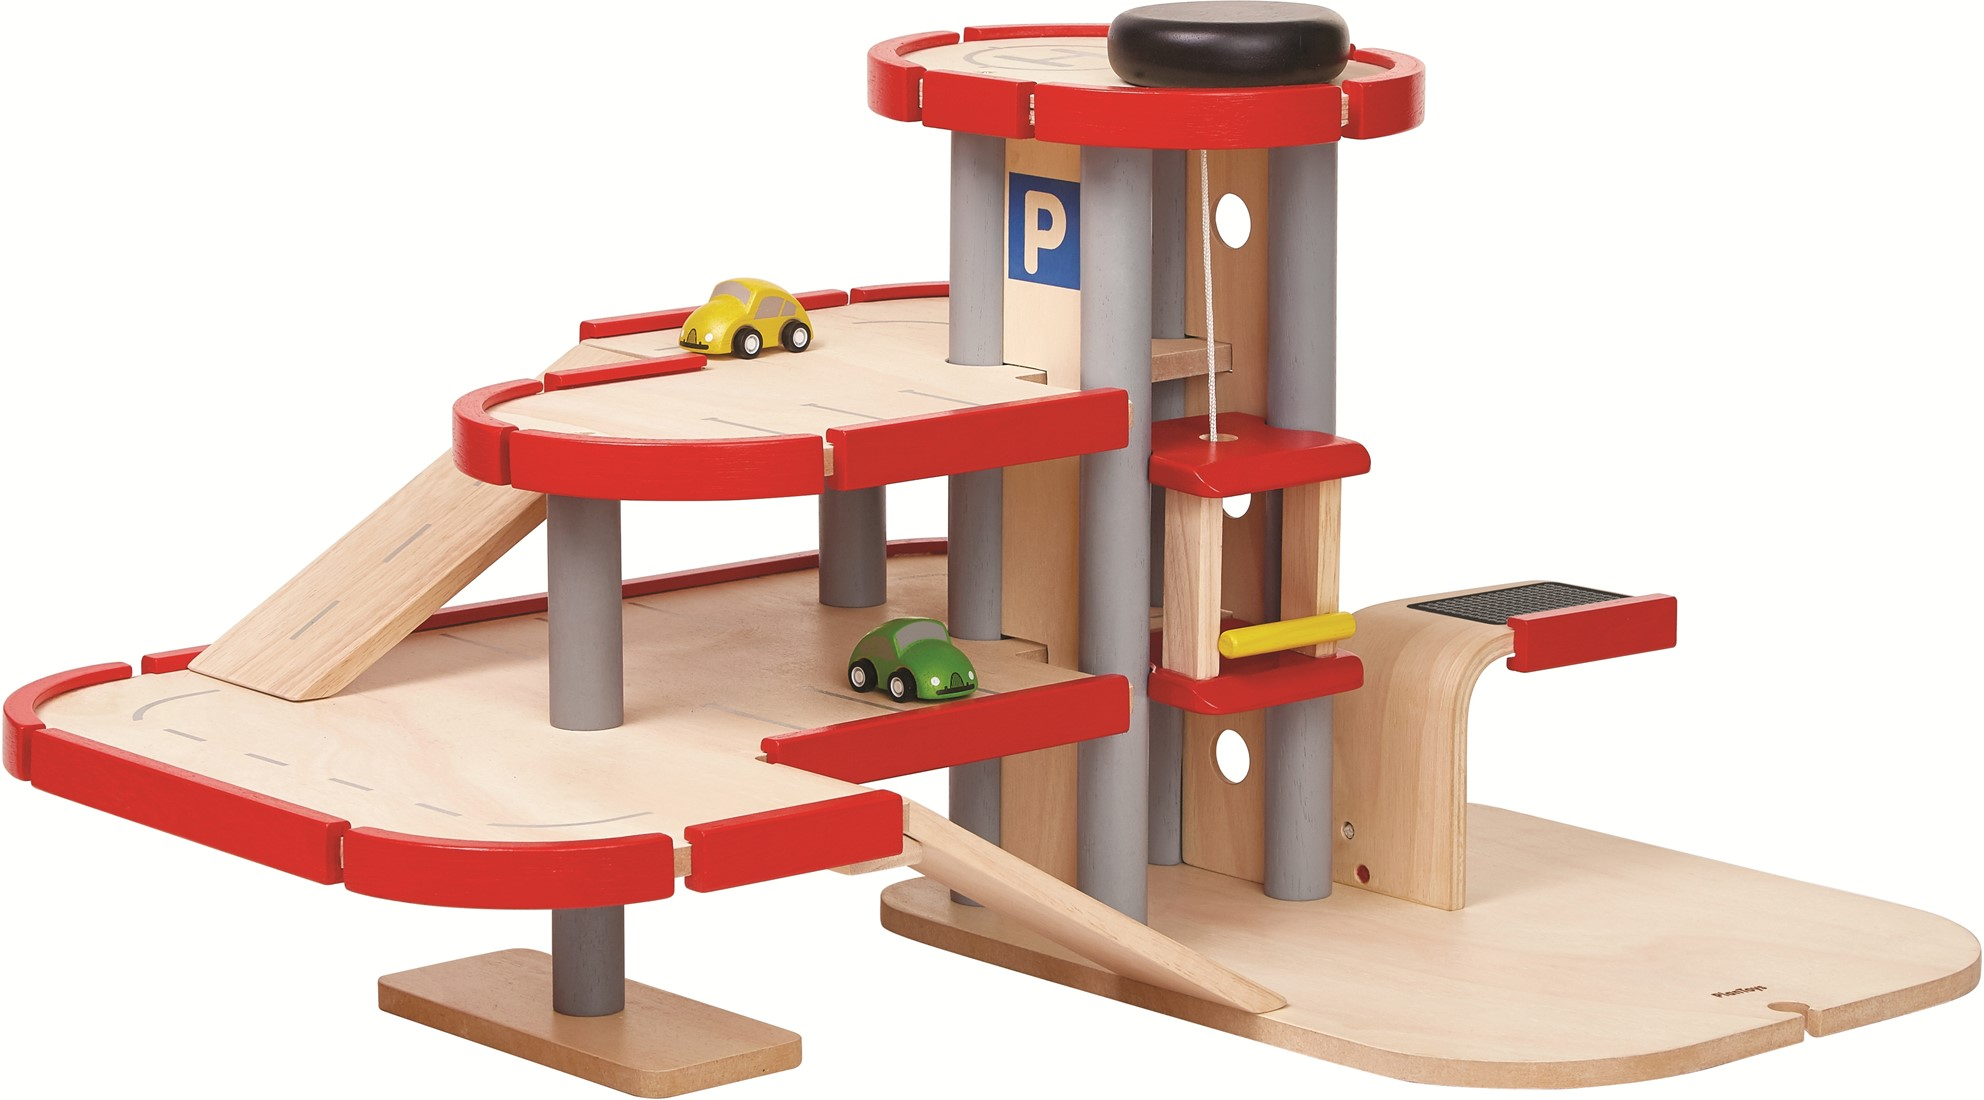 Plan Toys Garage : Plan toys houten speelgoed garage 6271 planet happy de